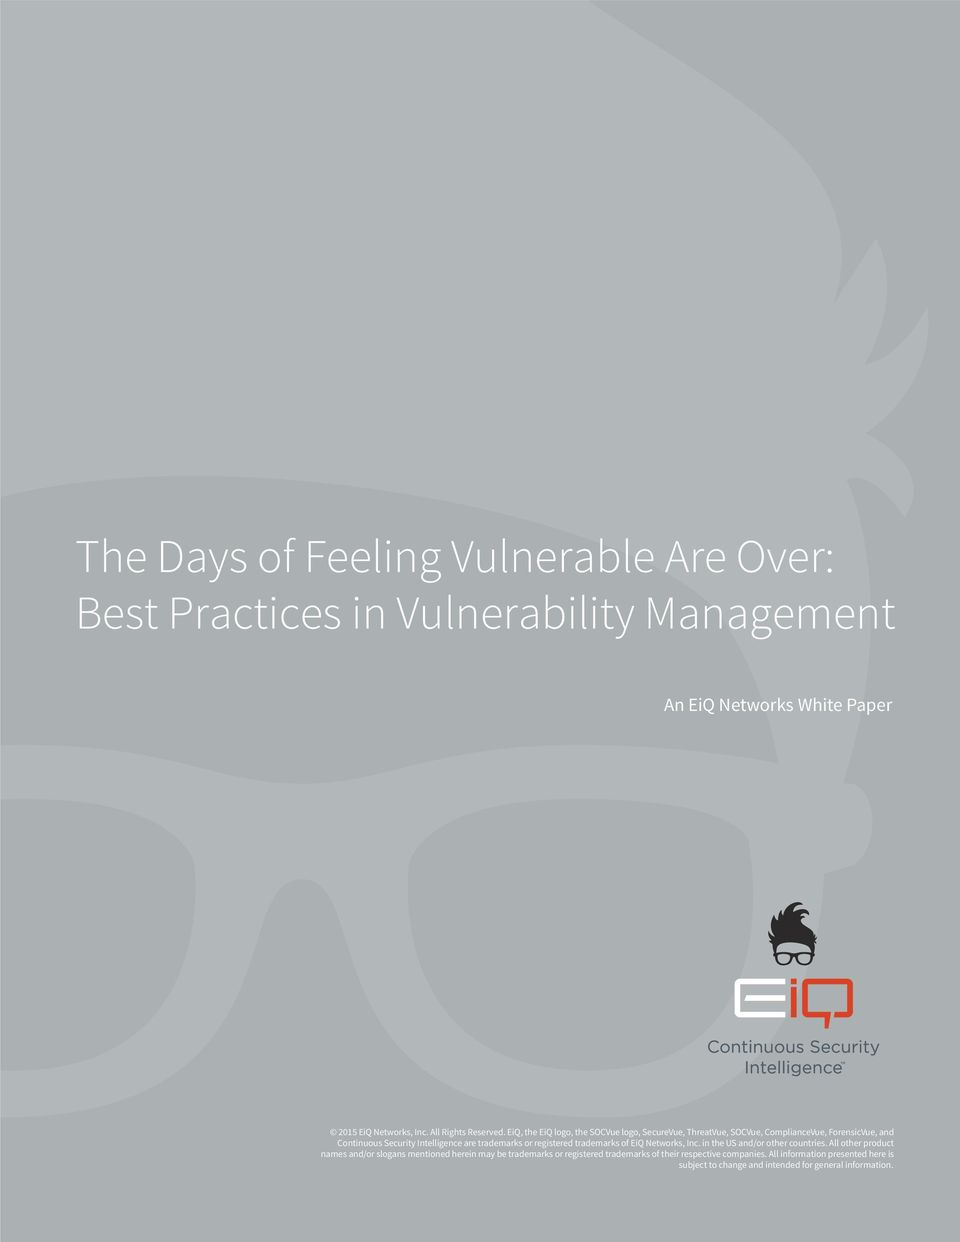 Practices in Vulnerability